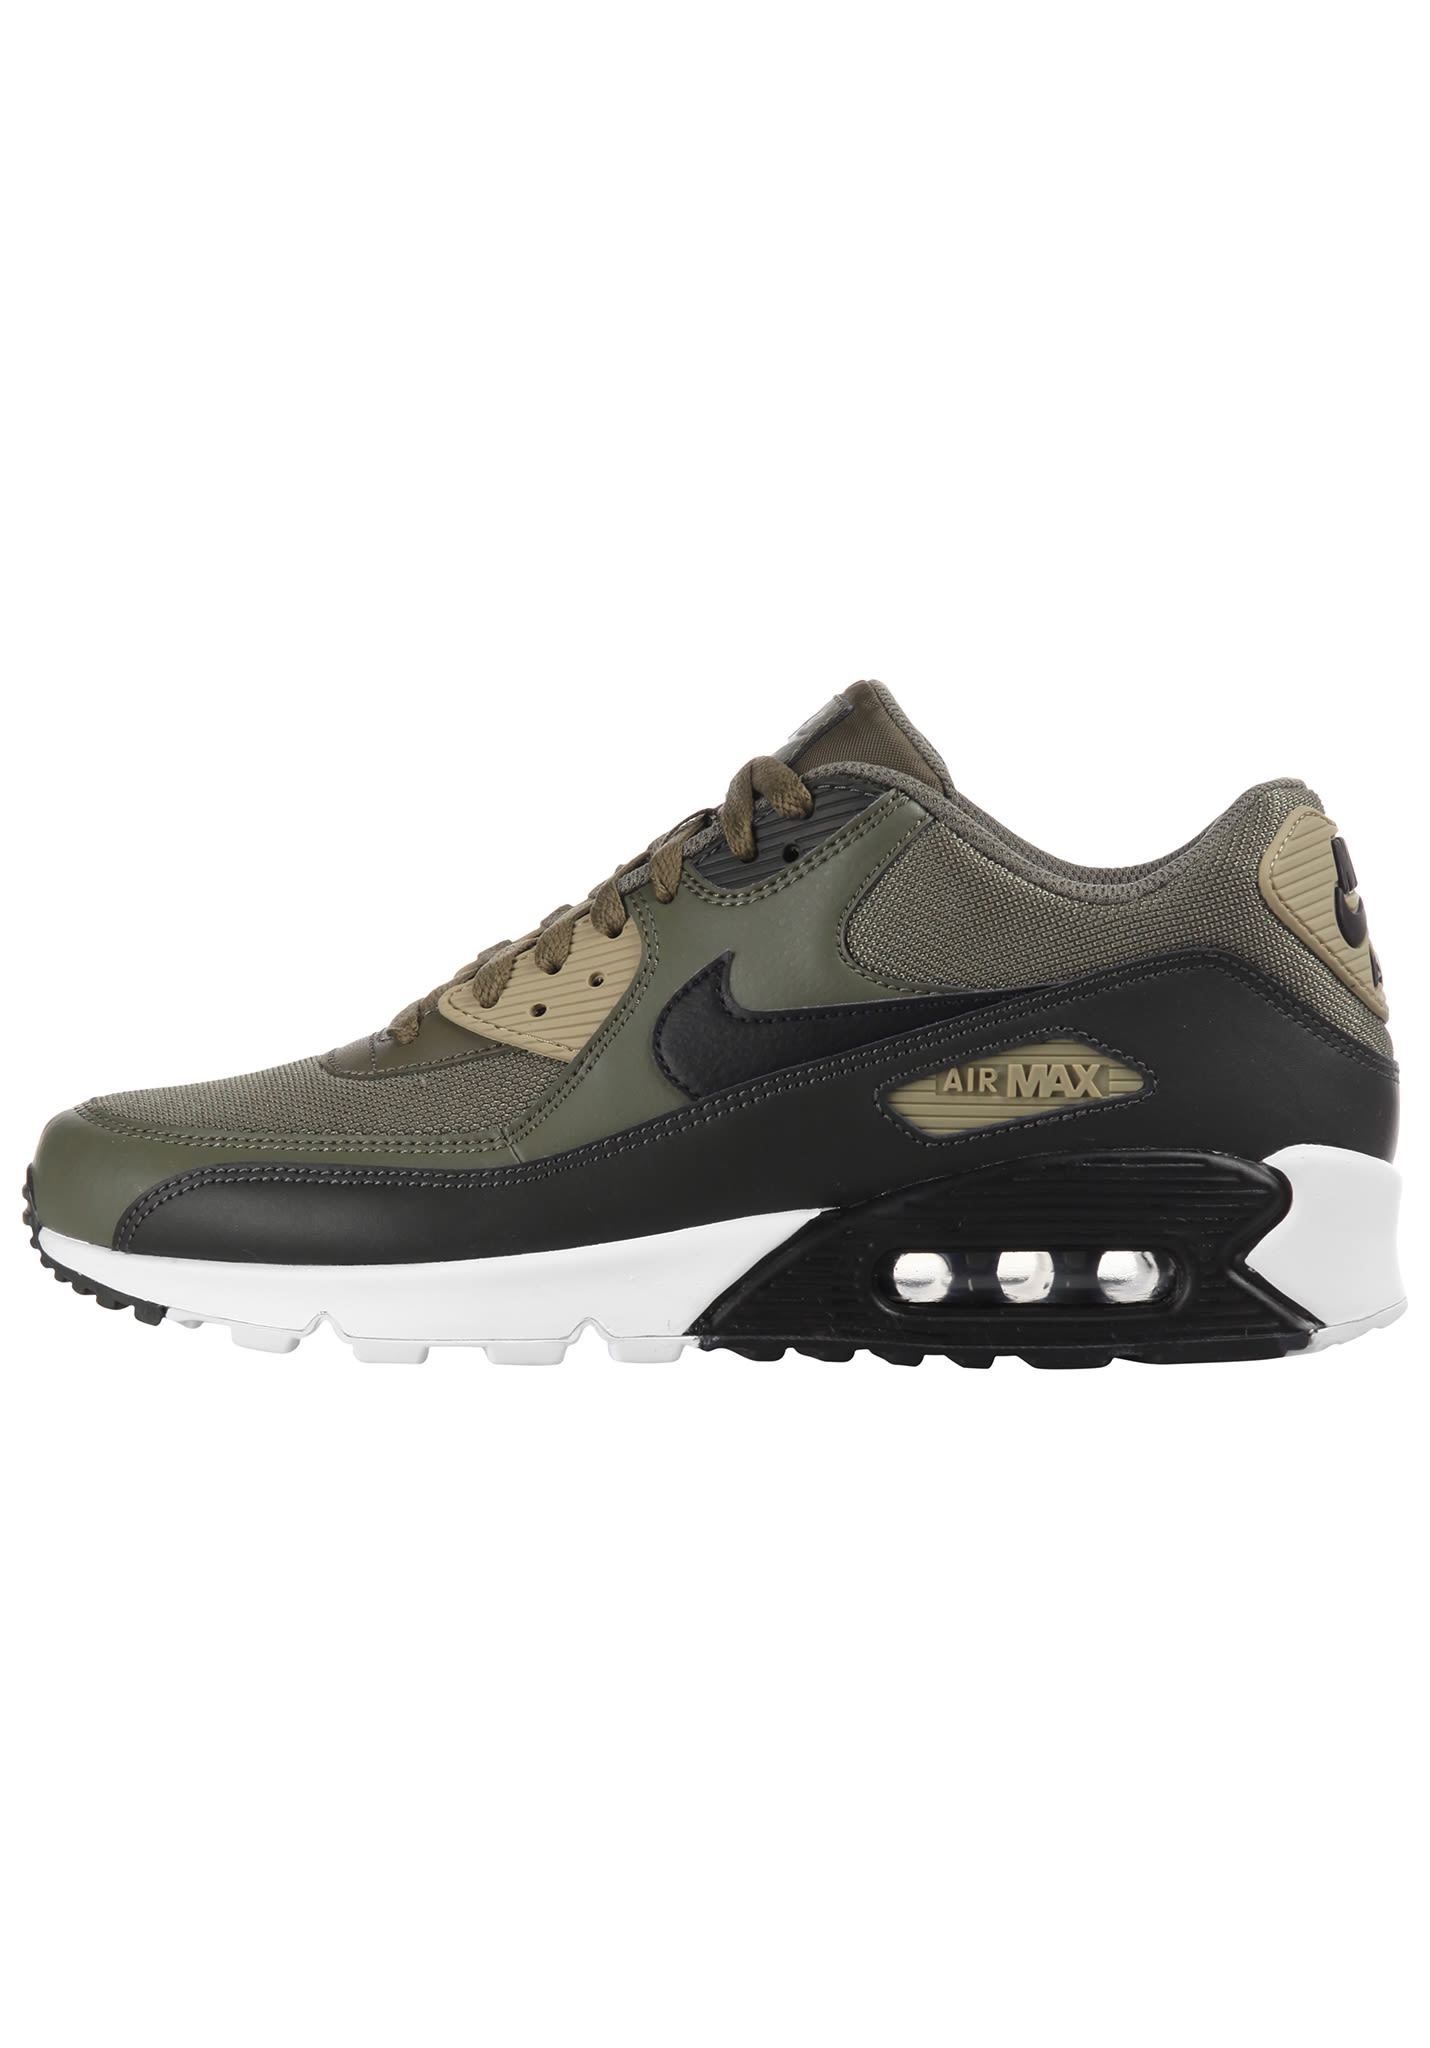 6edd5cf56fc NIKE SPORTSWEAR Air Max 90 Essential - Sneakers for Men - Green - Planet  Sports